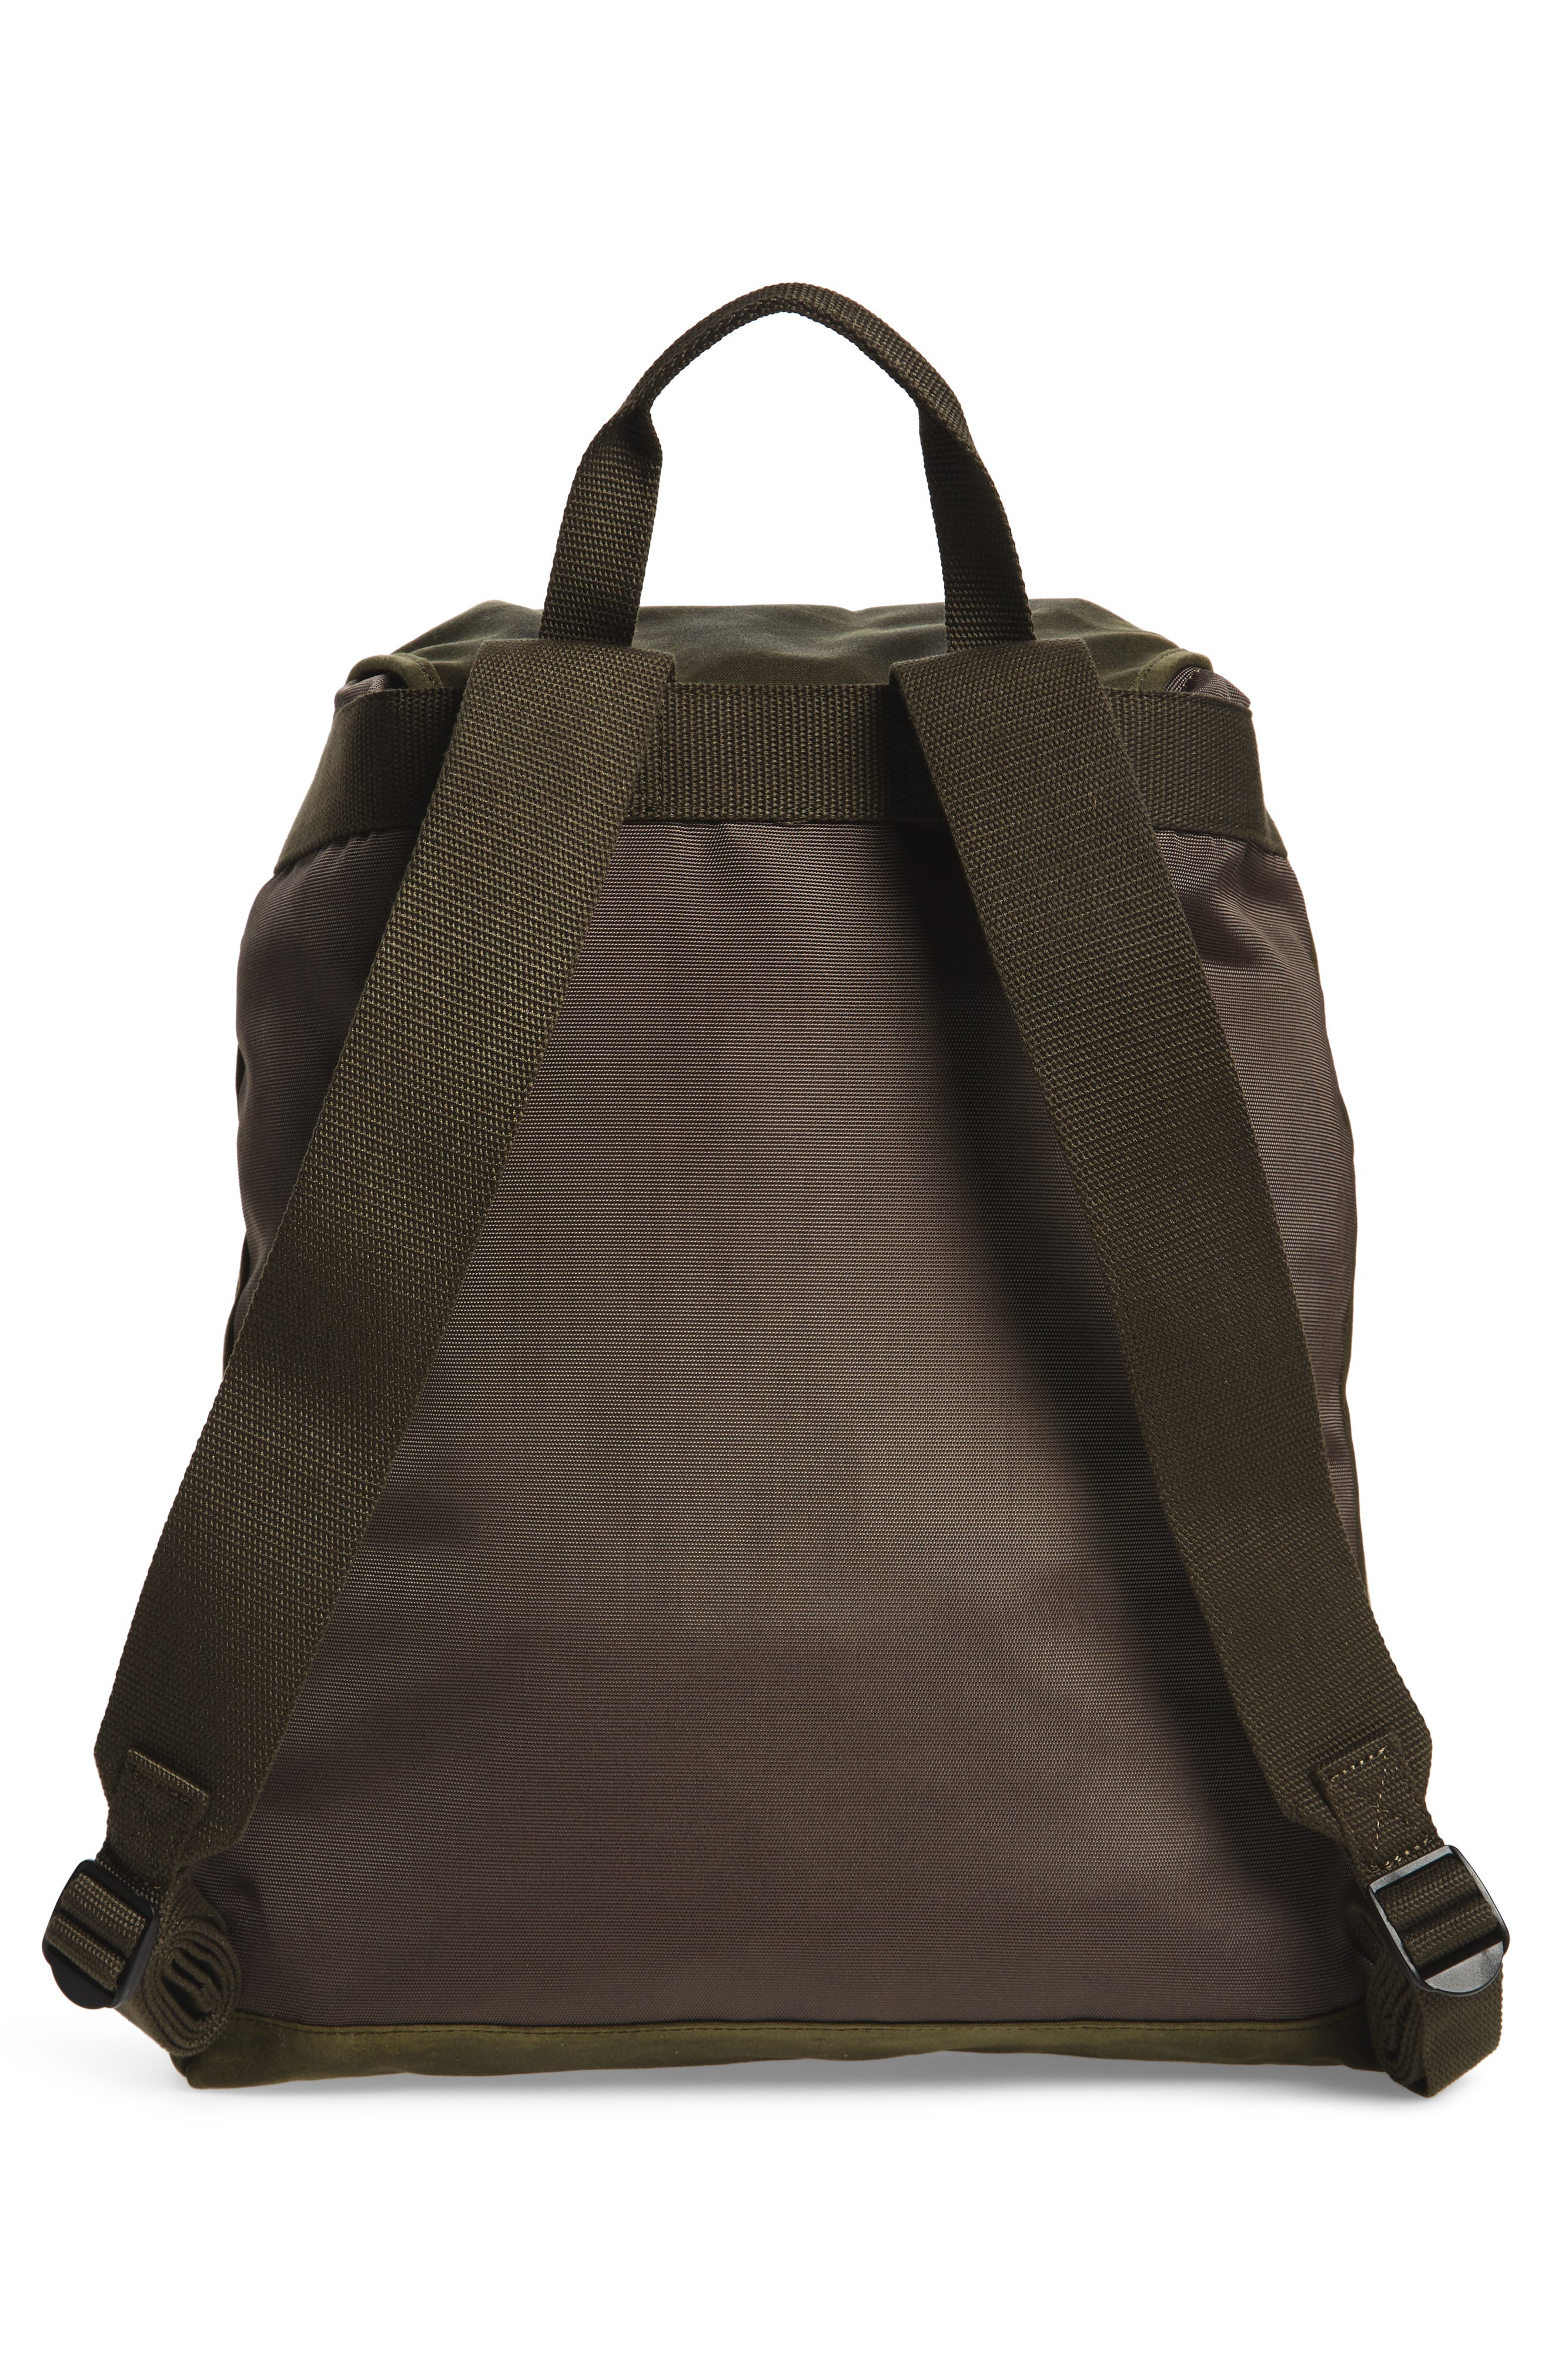 Archive Backpack,                             Alternate thumbnail 2, color,                             Archive Olive